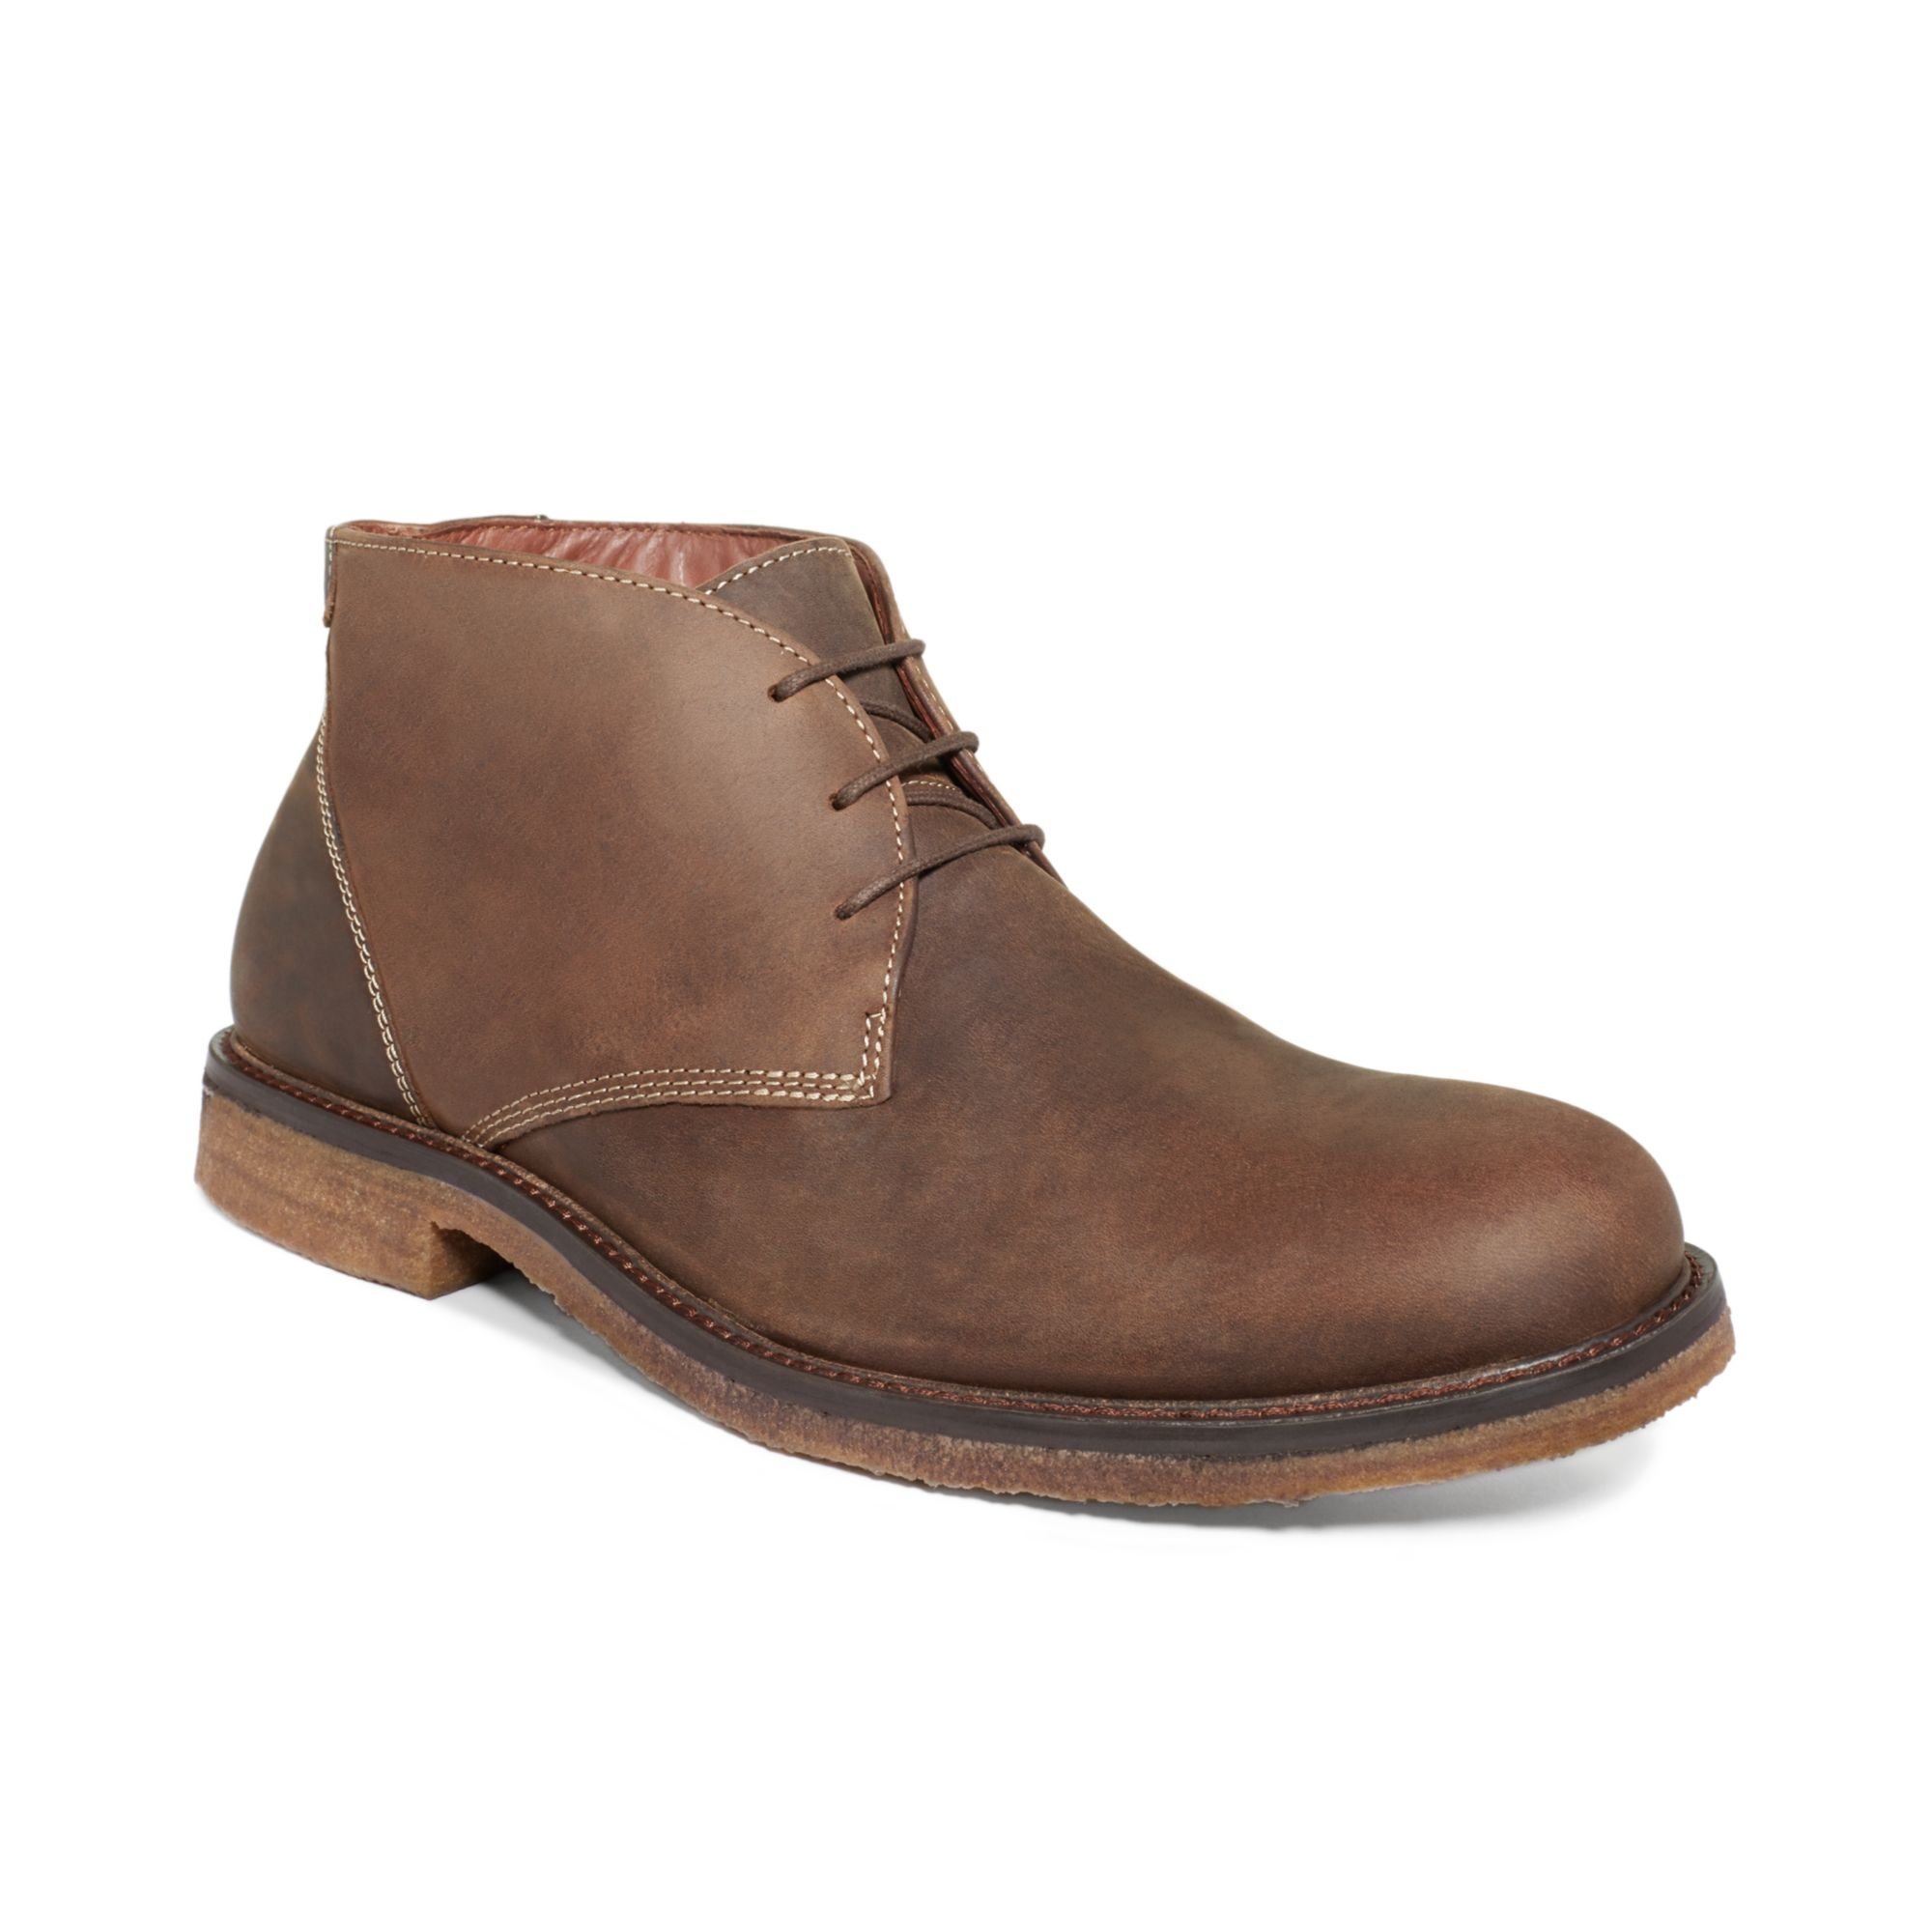 Johnston Amp Murphy Copeland Suede Chukka Boots In Brown For Men Lyst